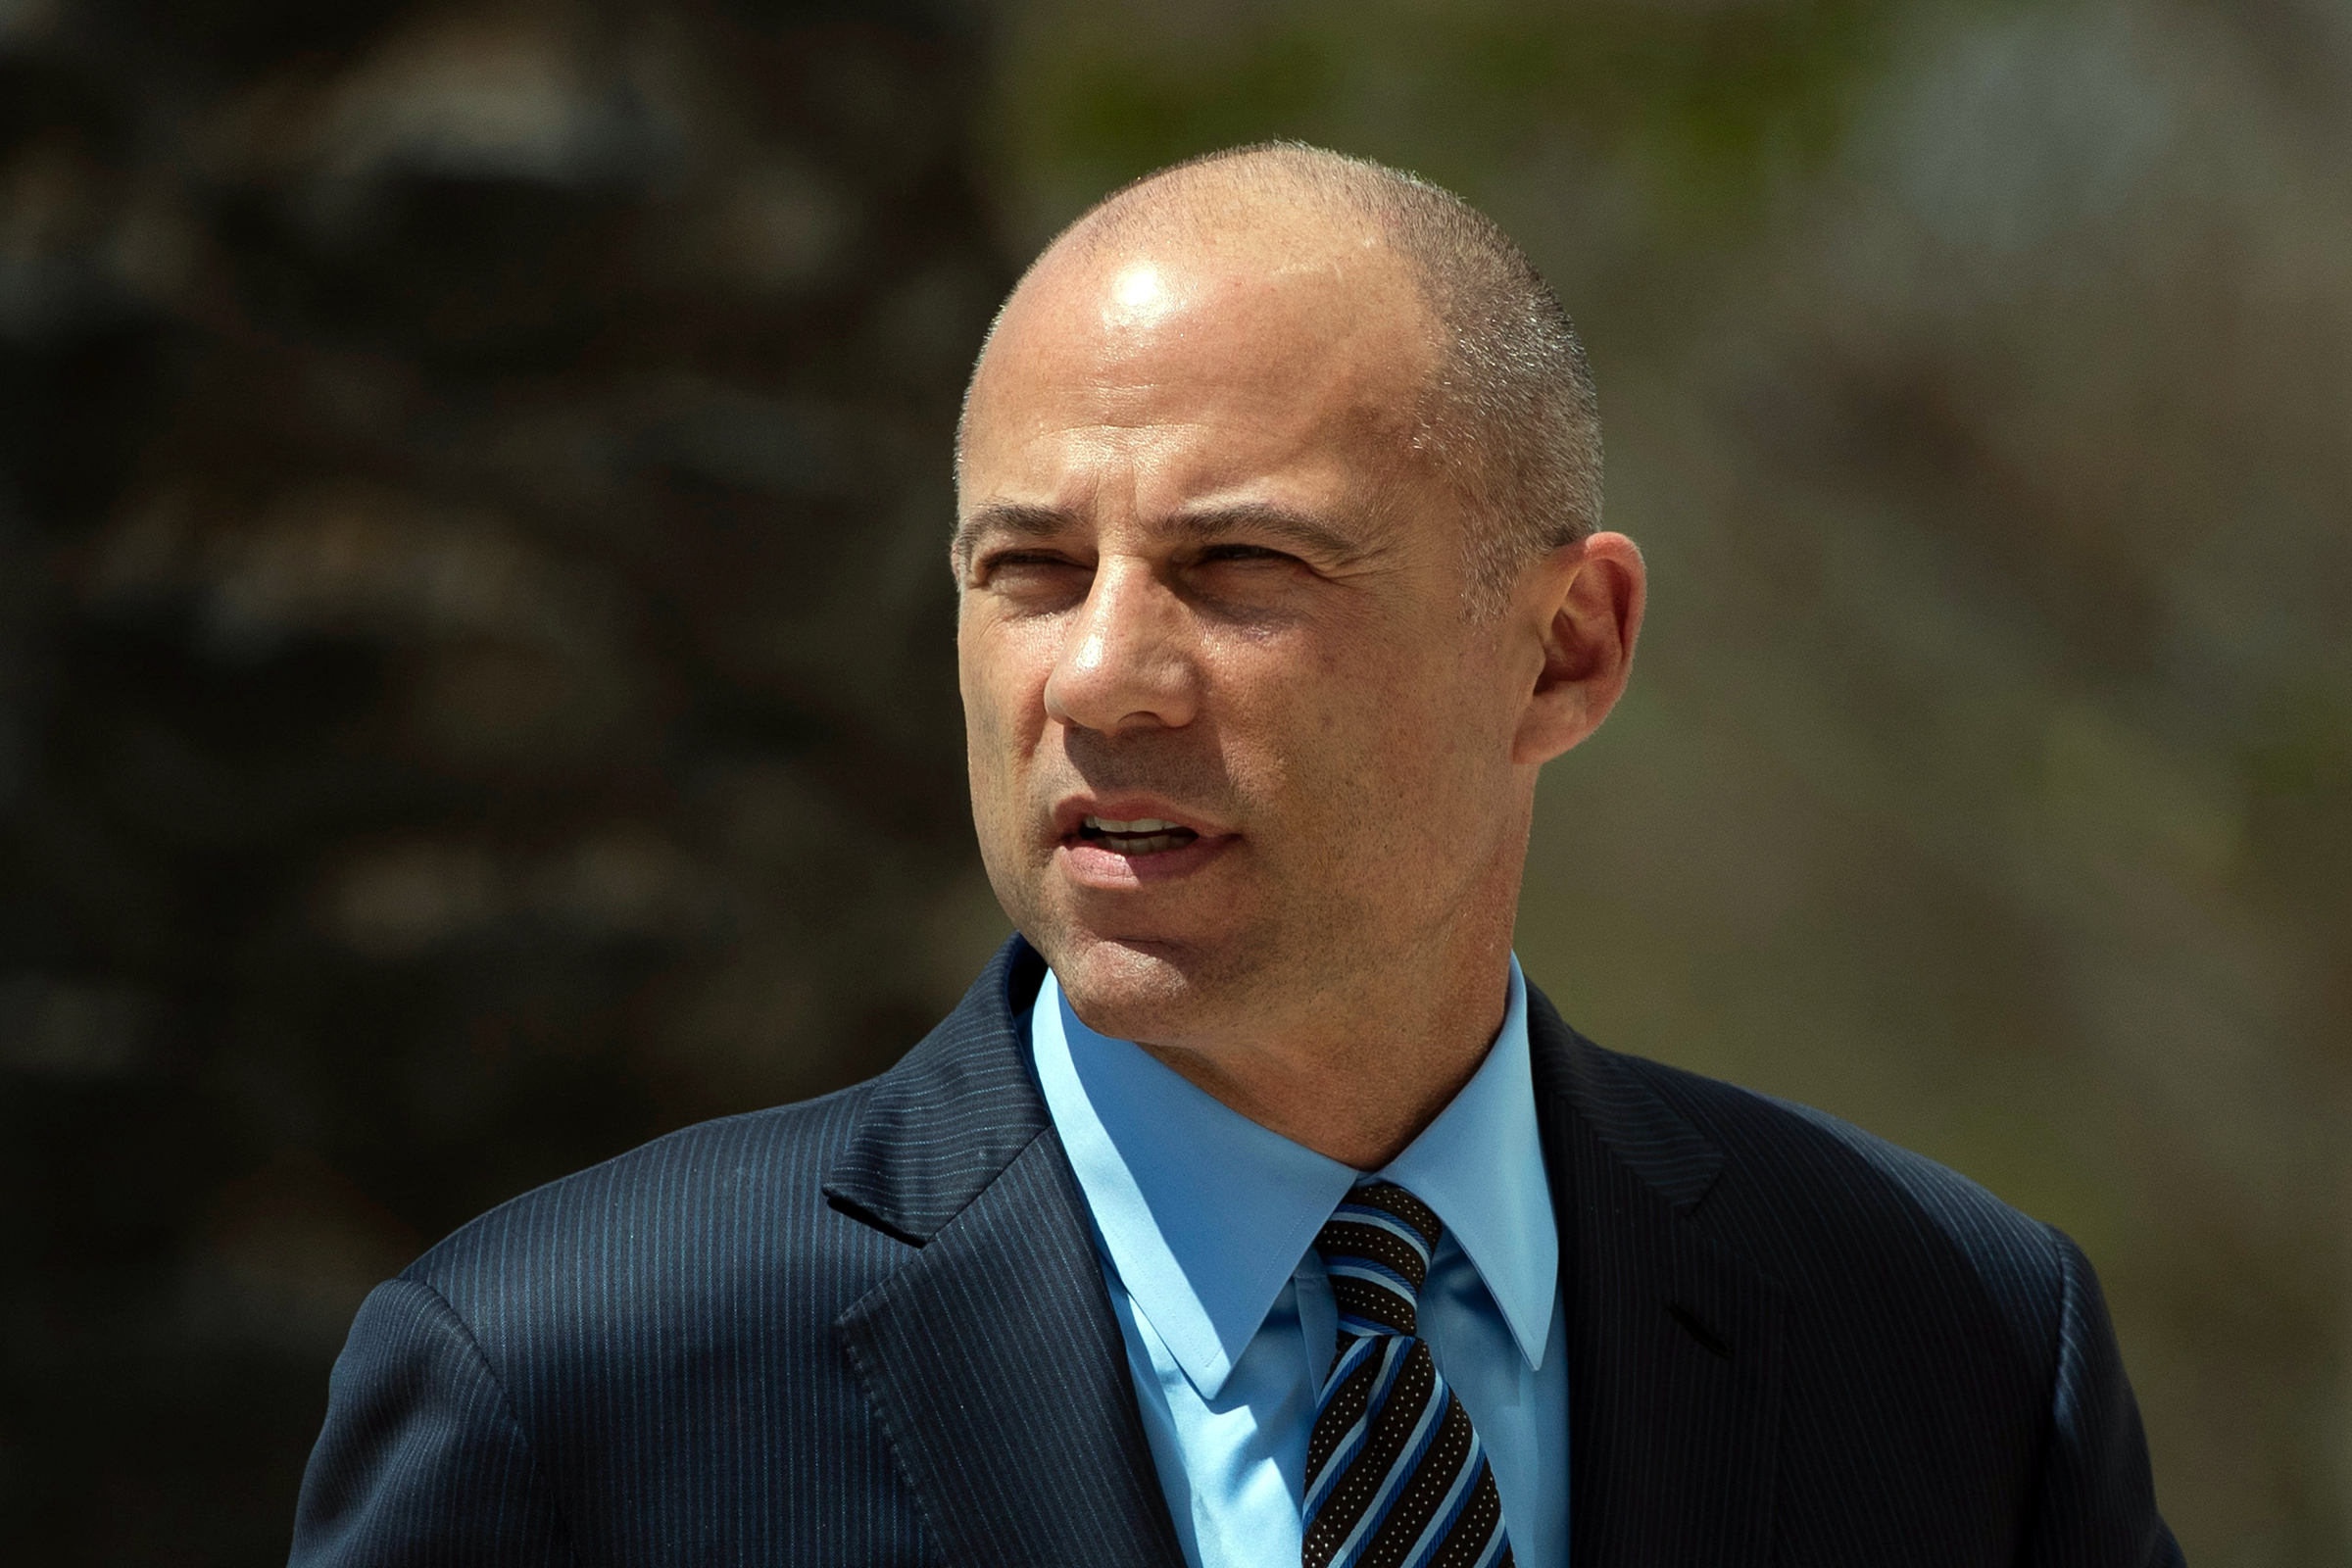 Michael Avenatti Charged With Financial Crimes Related to Stormy Daniels